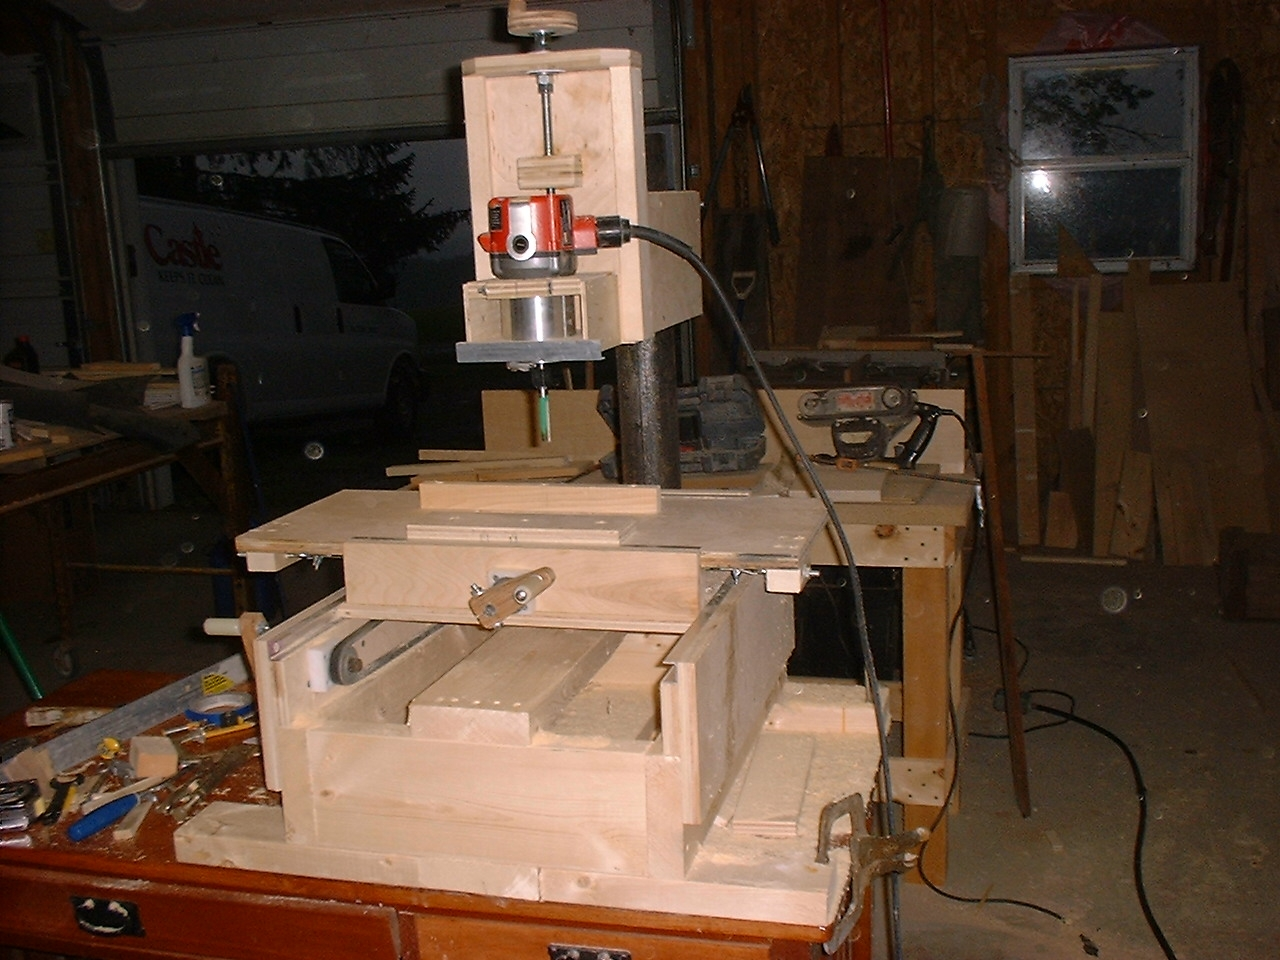 My new improved homemade router milling machine